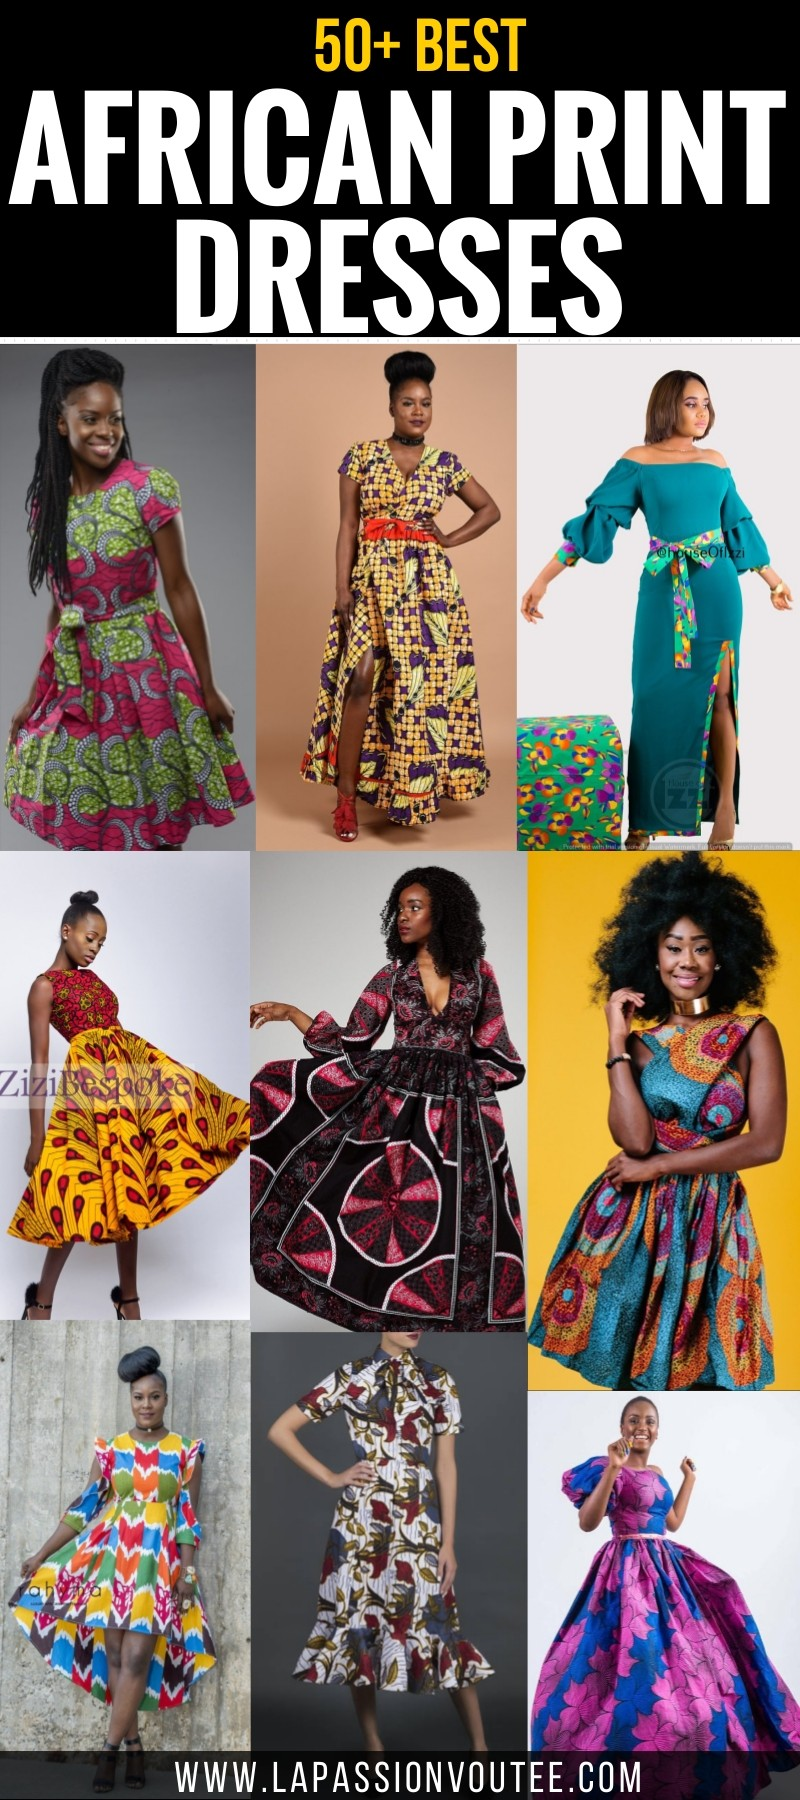 310a7dba92 50+ Best African Print Dresses    where to get them